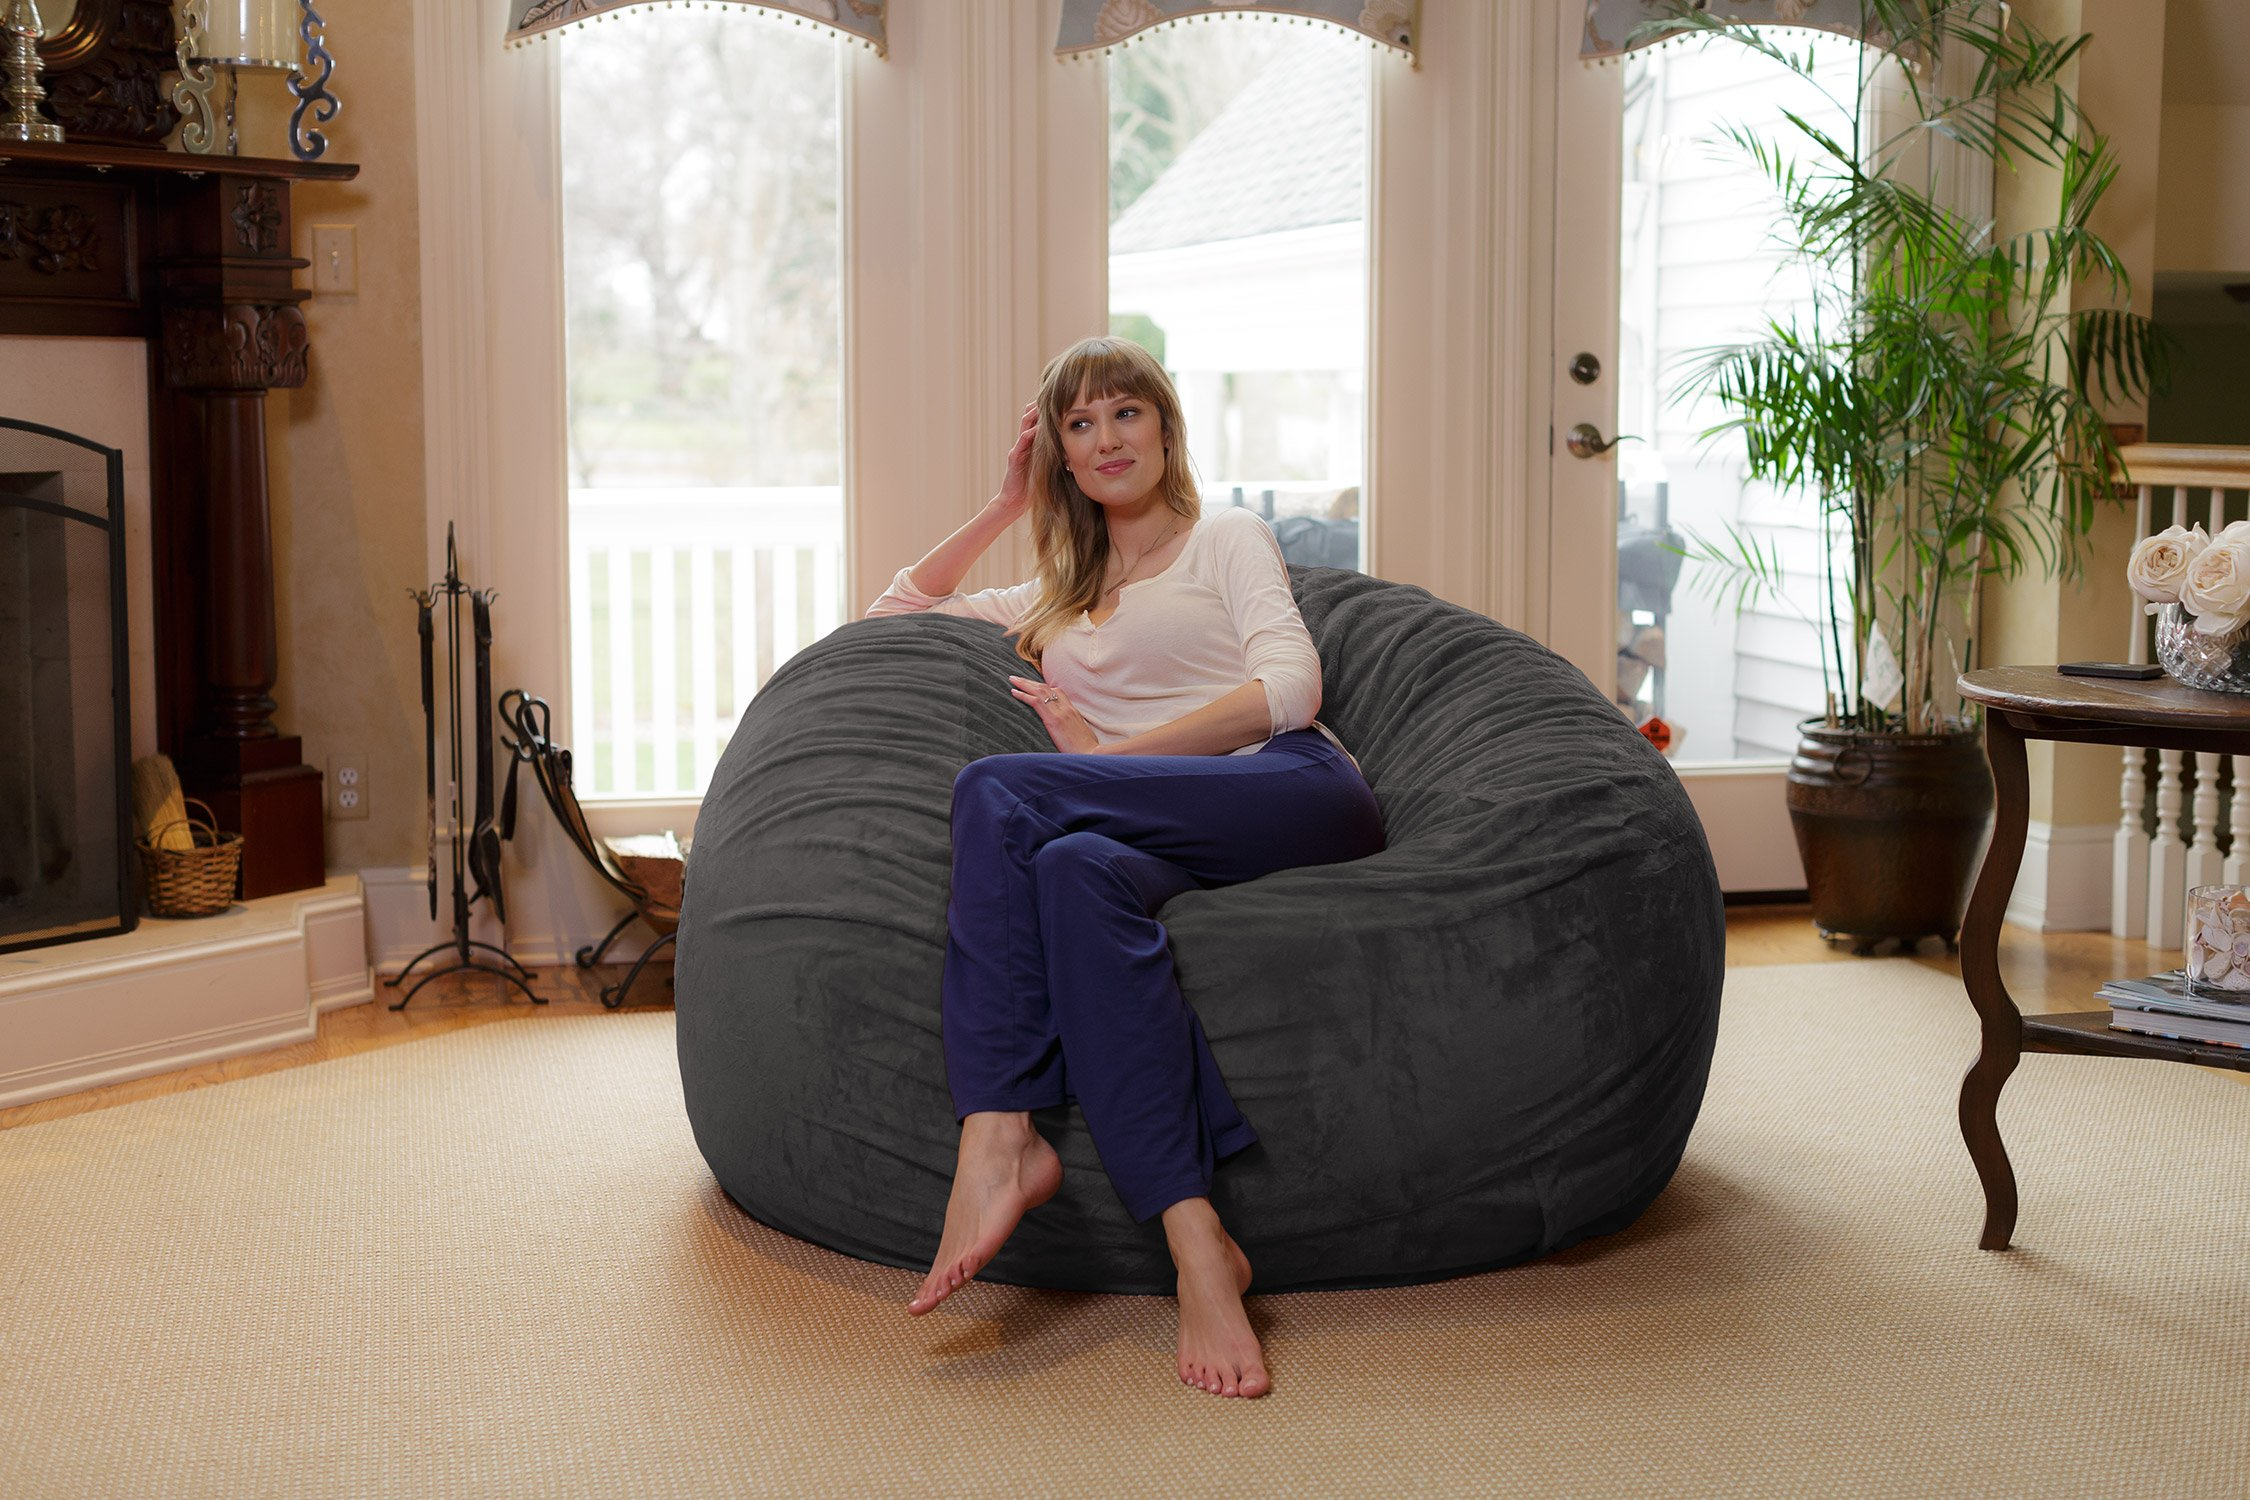 Chill Sack Bean Bag Chair: Giant 6' Memory Foam Furniture Bean Bag - Big Sofa with Soft Micro Fiber Cover - Grey Furry by Chill Sack (Image #4)